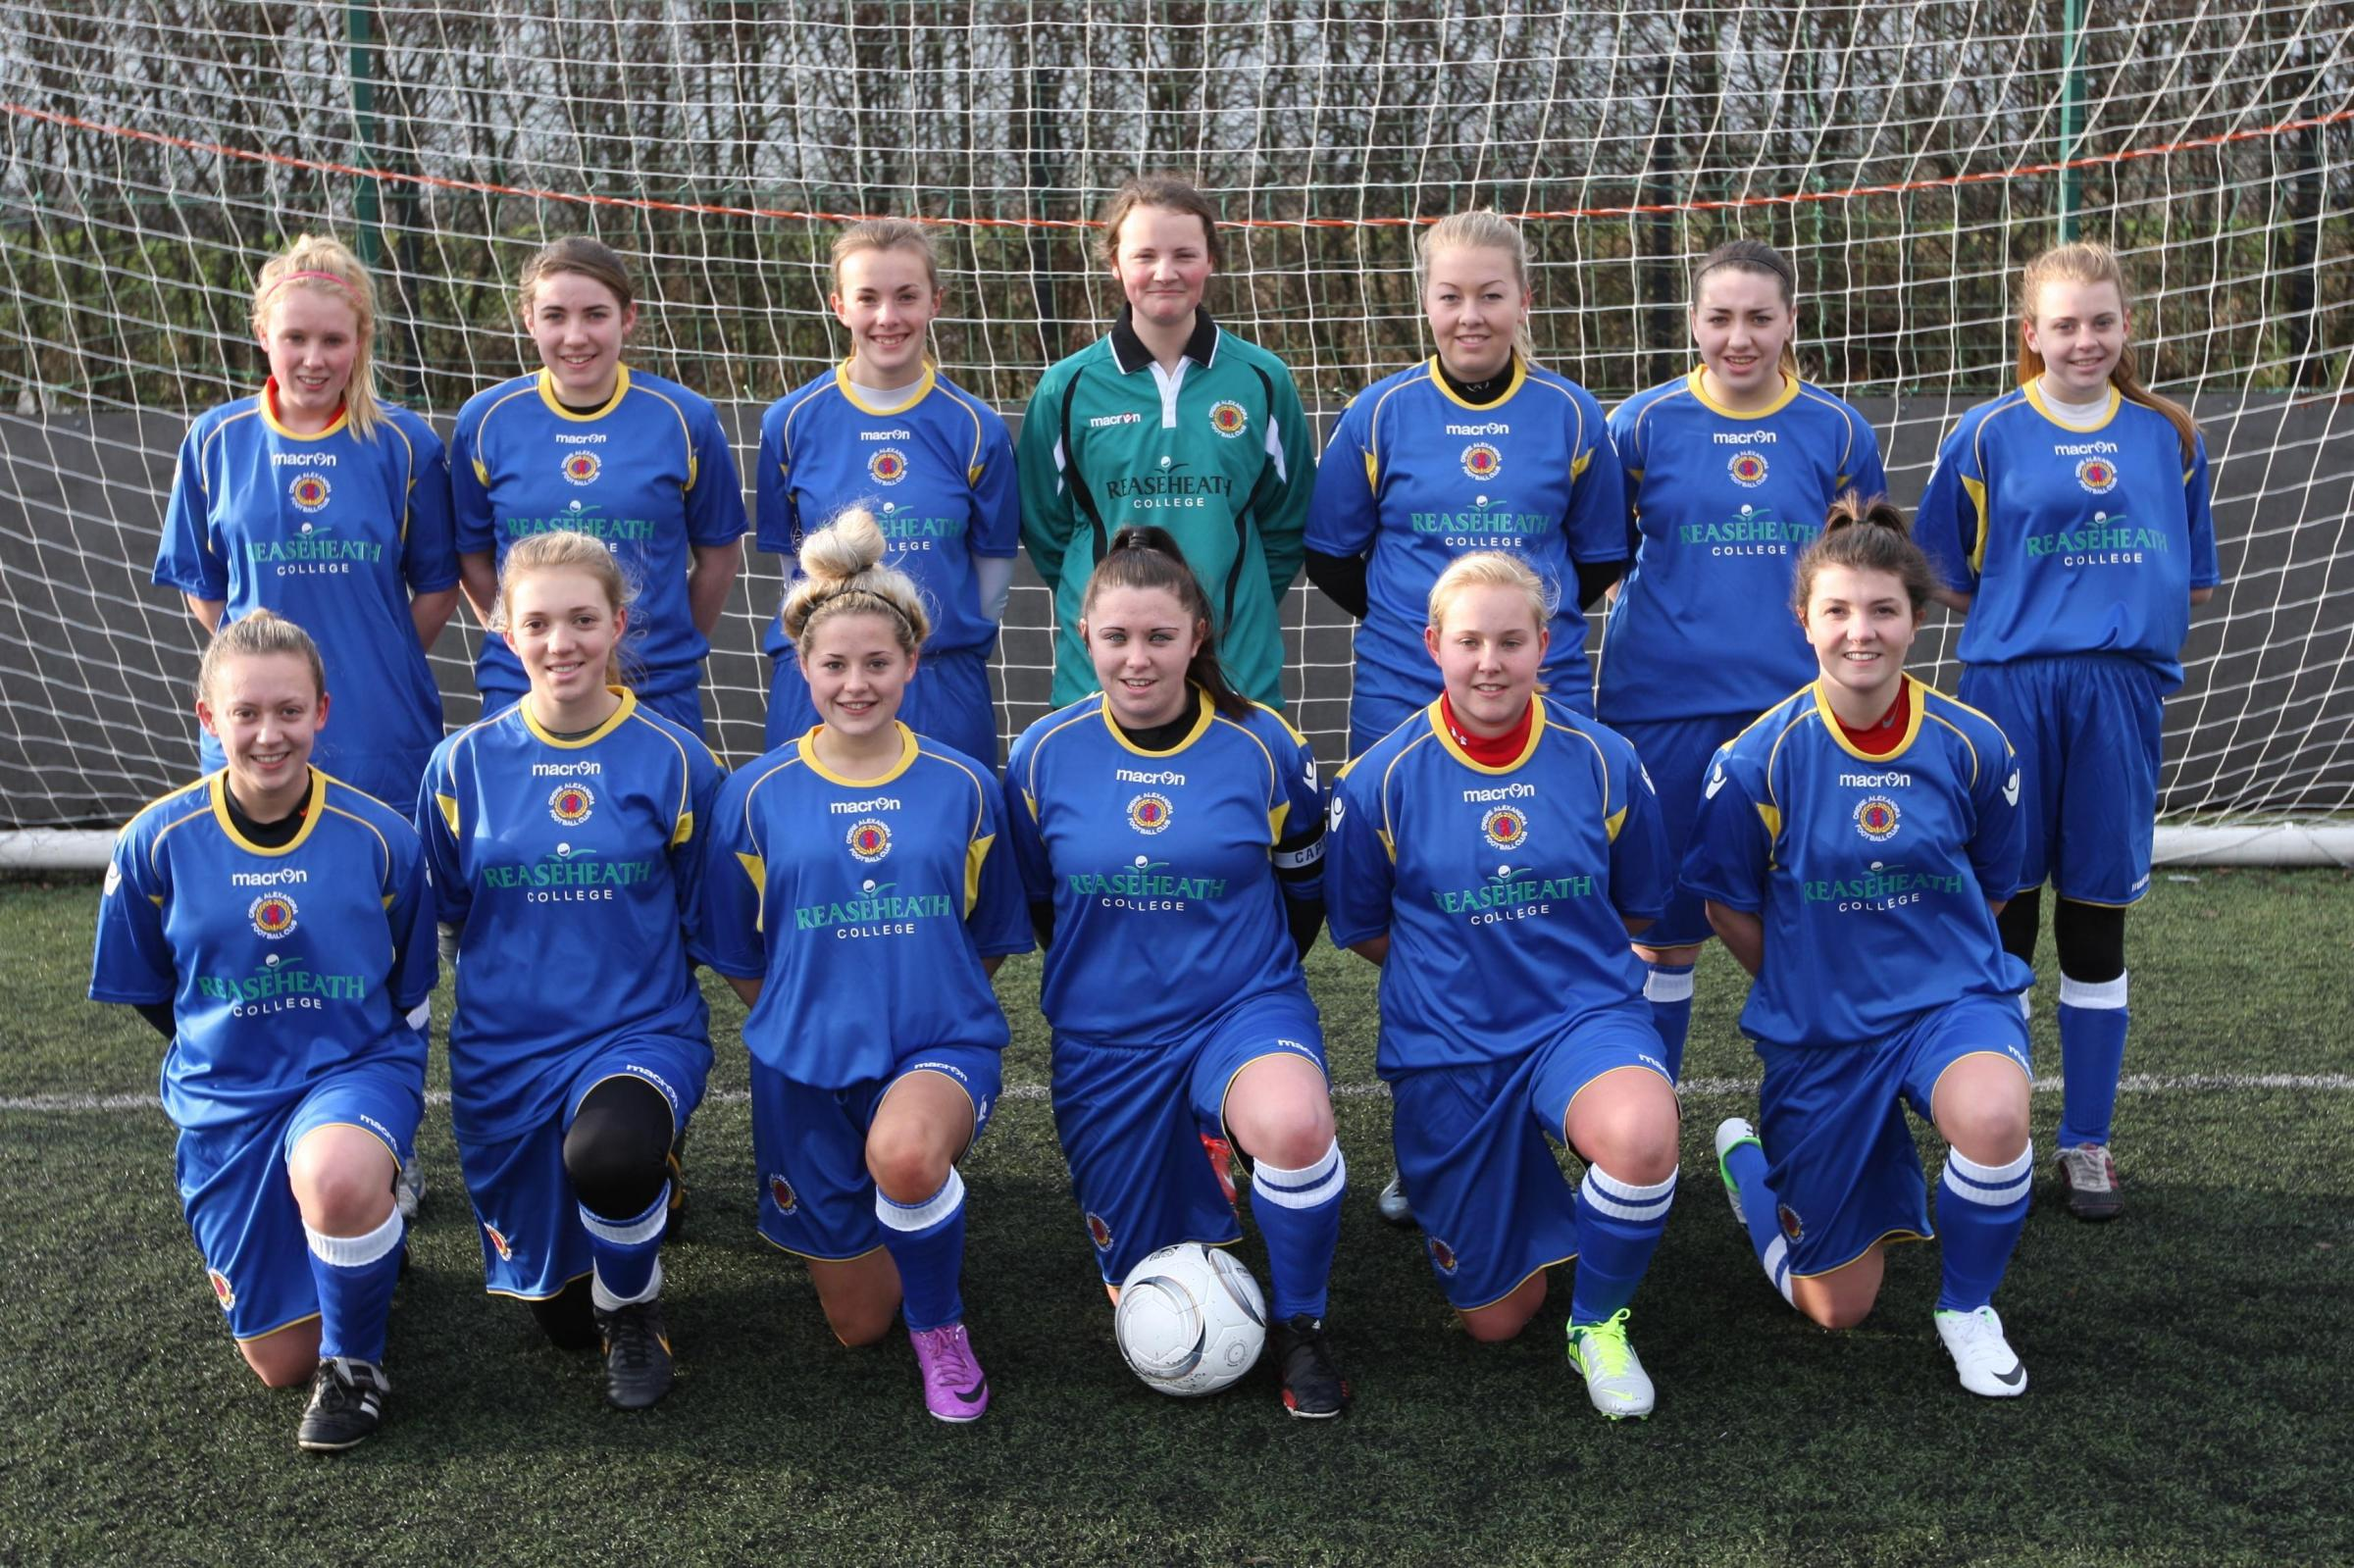 Crewe Ladies u18s, back row from left, Hannah Cunningham, Charlotte Wilkinson, Sharla Maddocks, Sophie Brooks, Mary Turley, Hollie Durkin, Kate Evans, front from left, Becky Garner, Abbey Whittingham, Annie Timmis, Alex Heron,